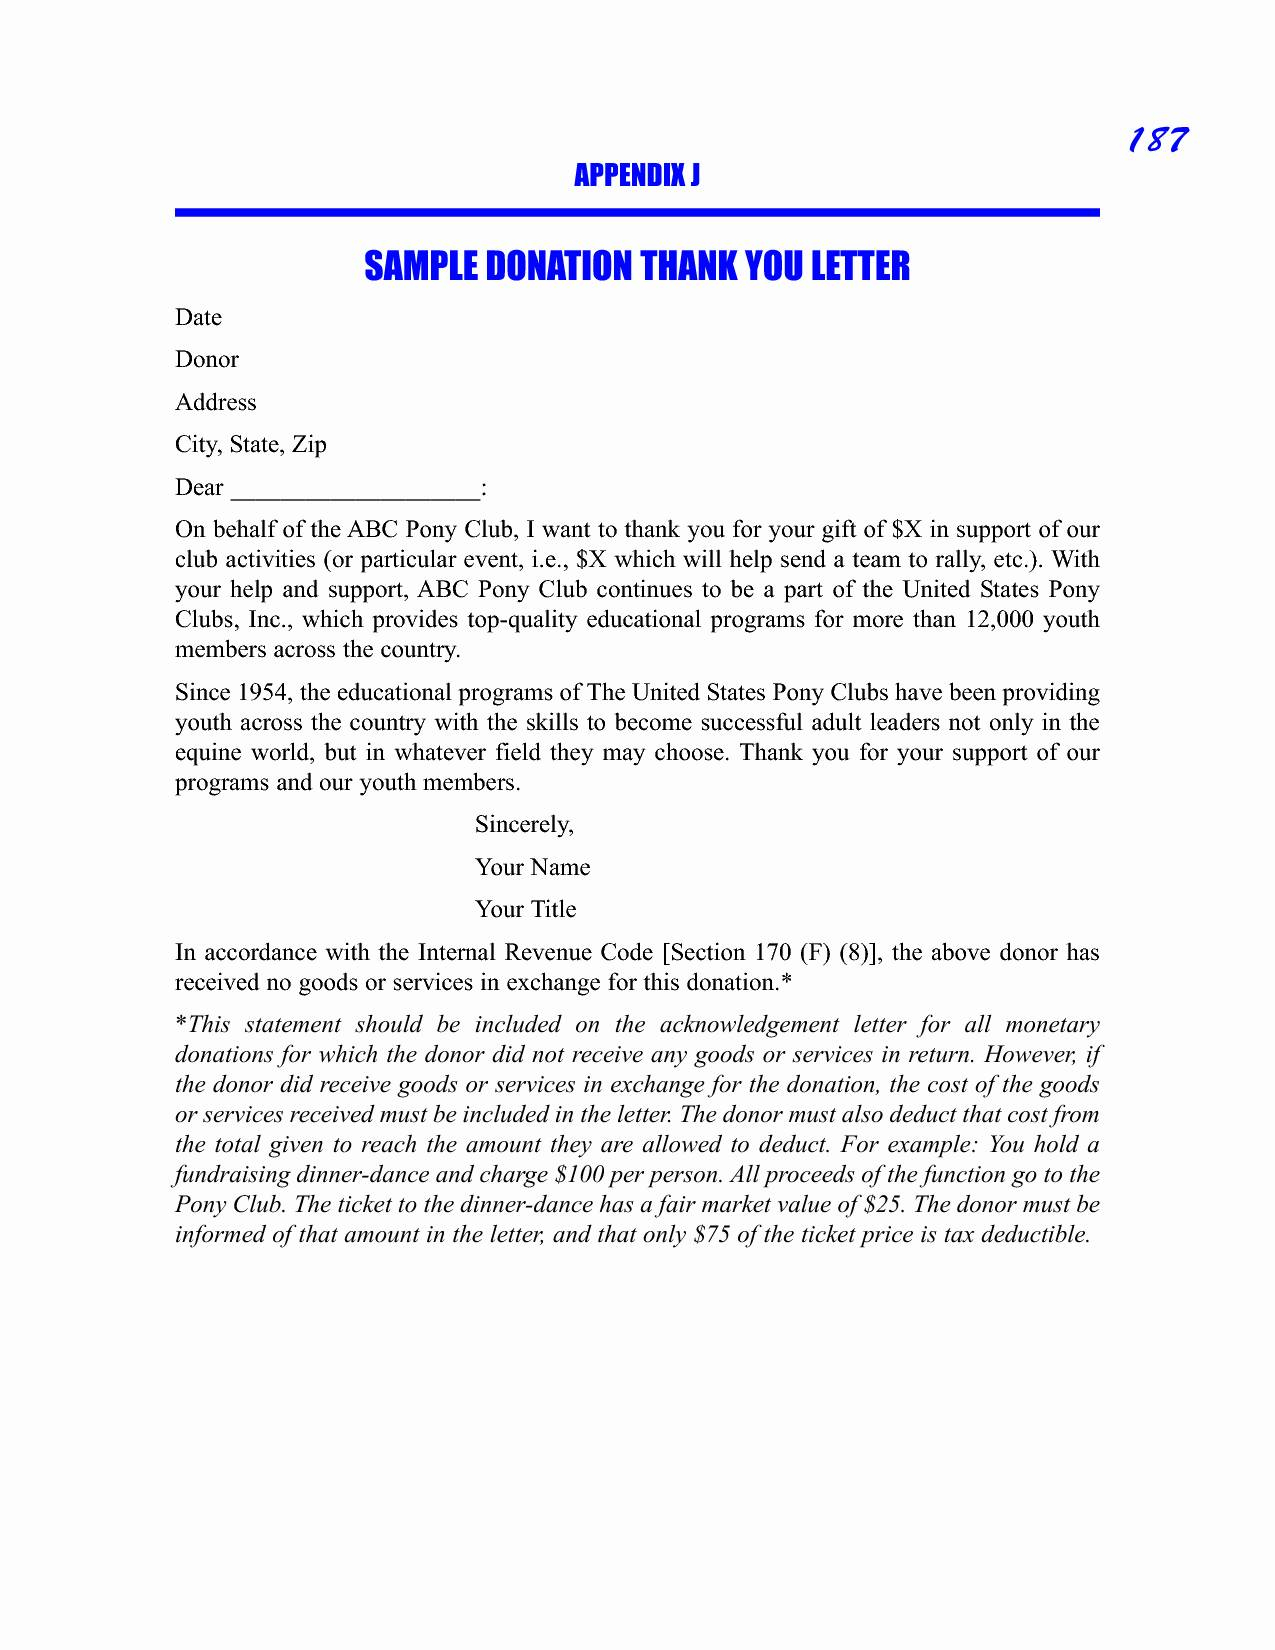 Thank You for Your Donation Letter Template - Scholarship Guidelines Template Fresh Donation Thank You Letters